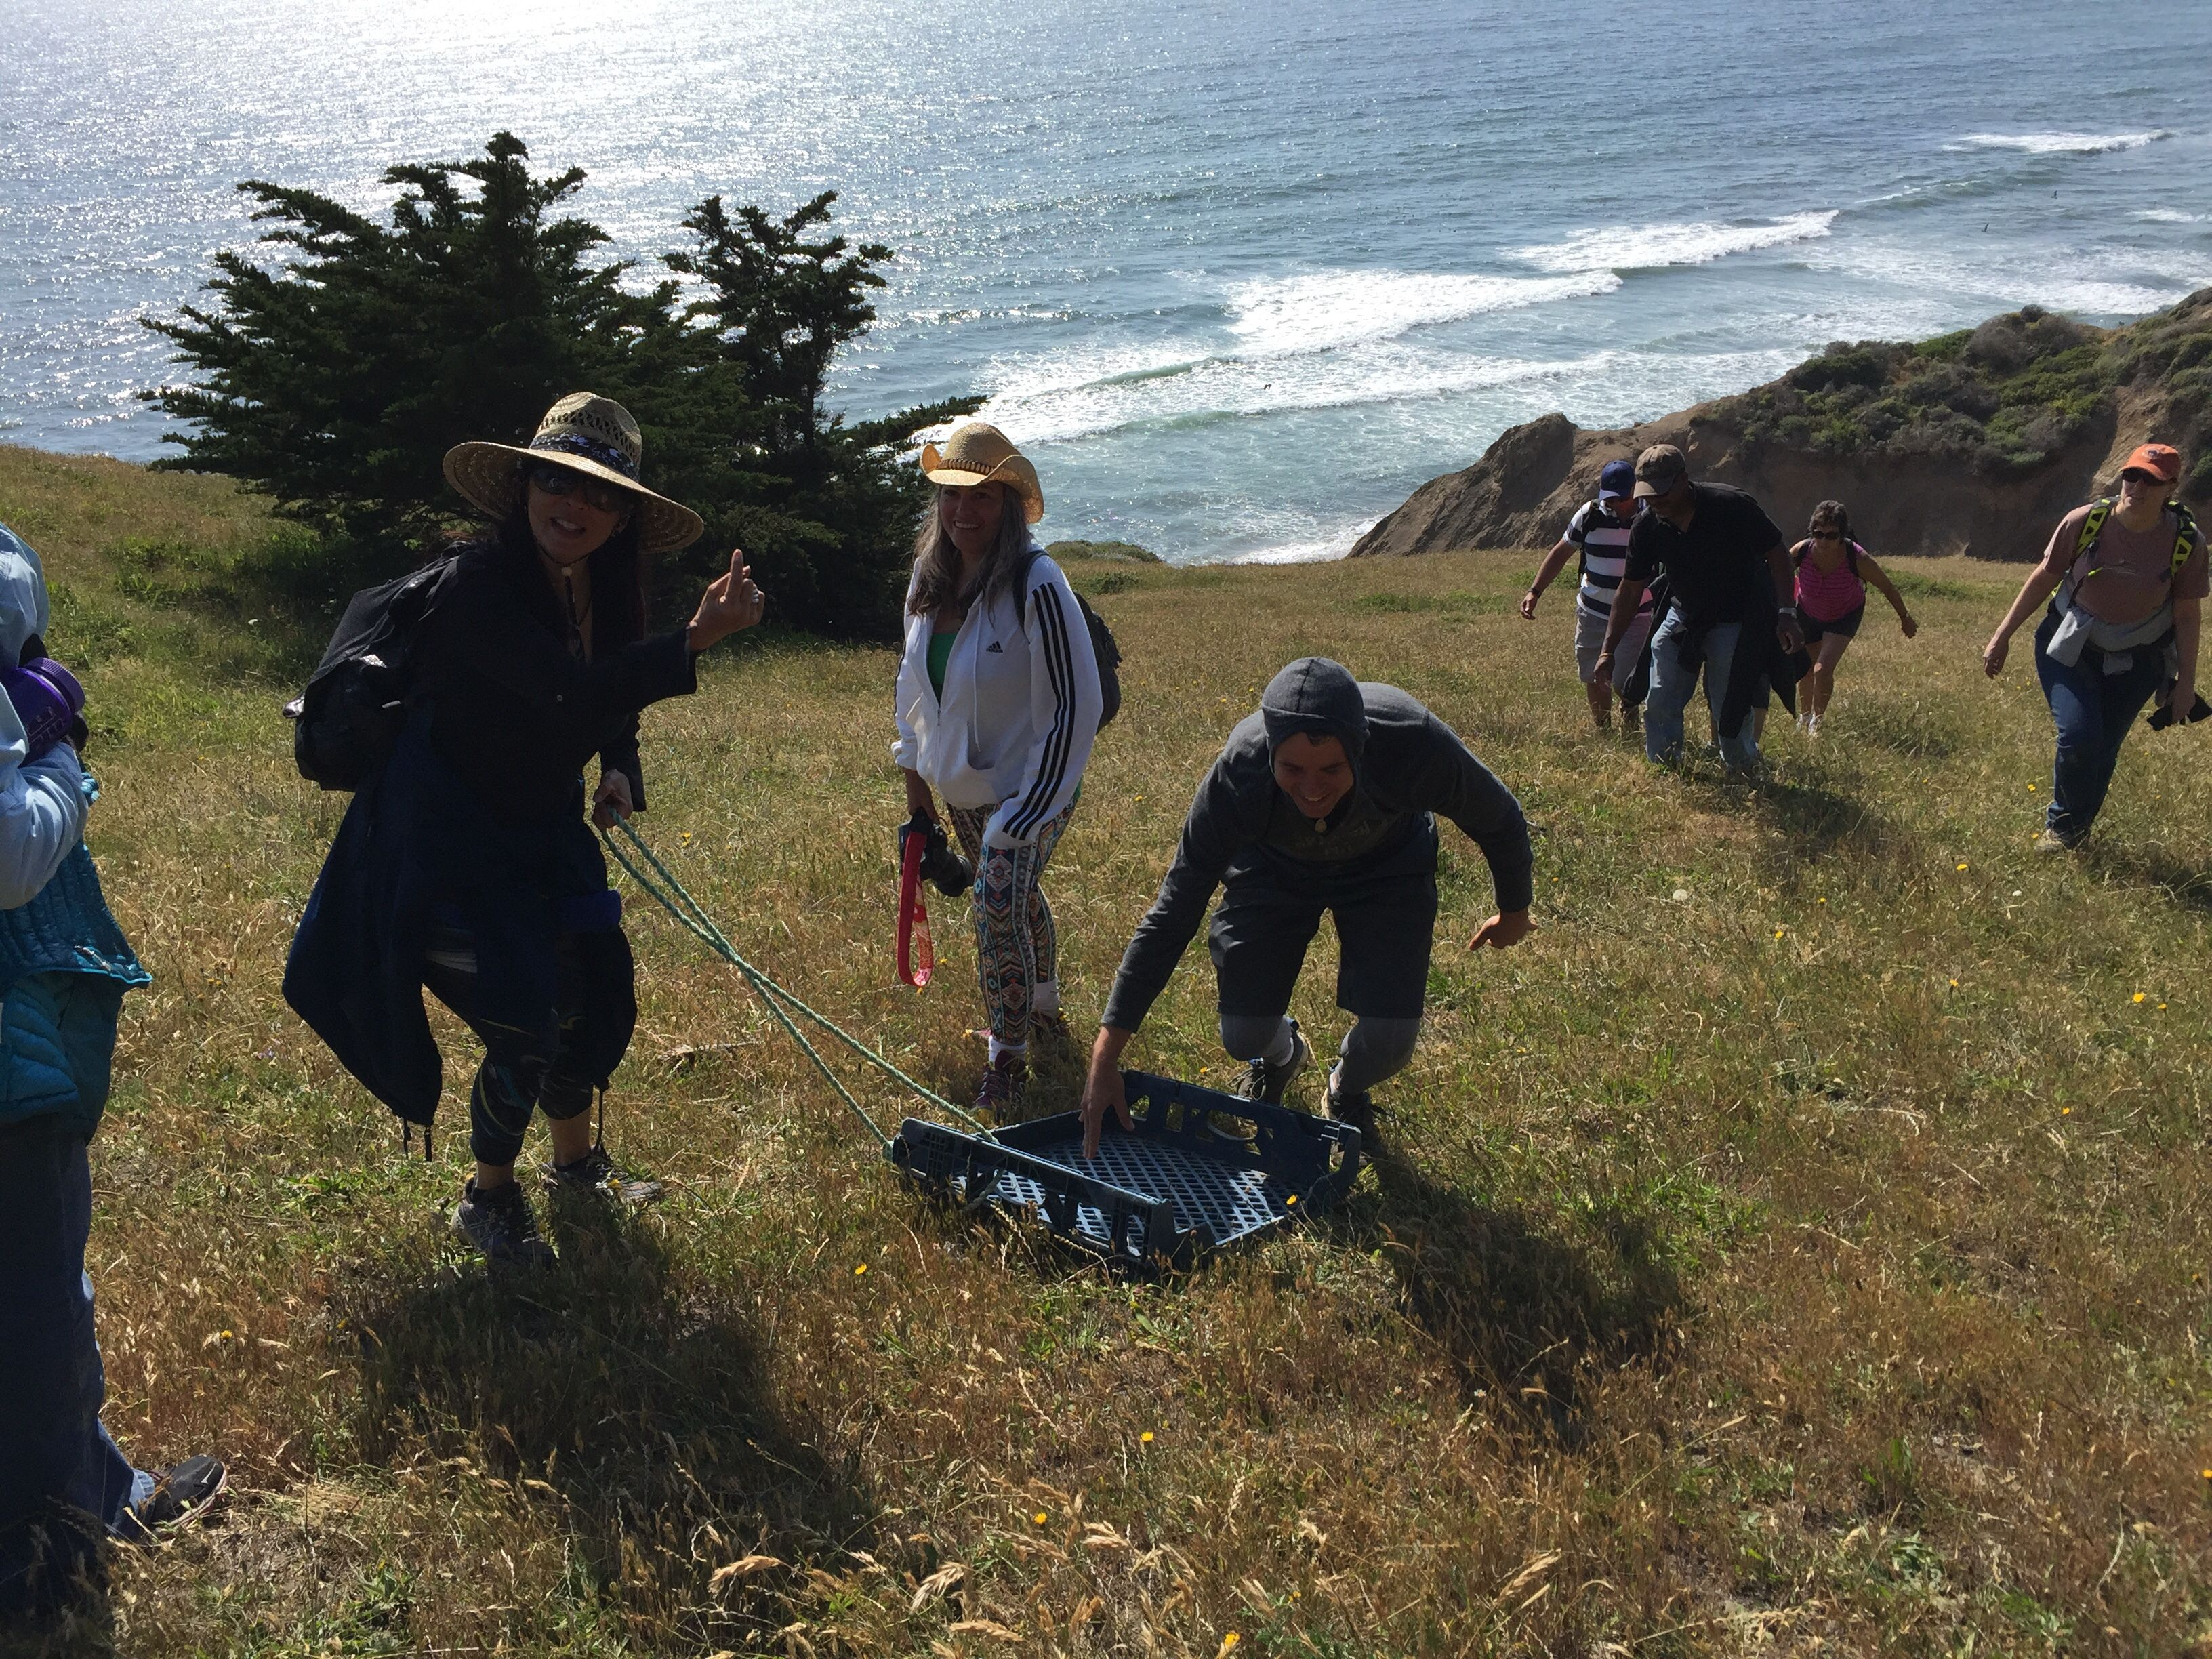 East Bay Travel Buddies, Adventures, Local Hikes, & Trips